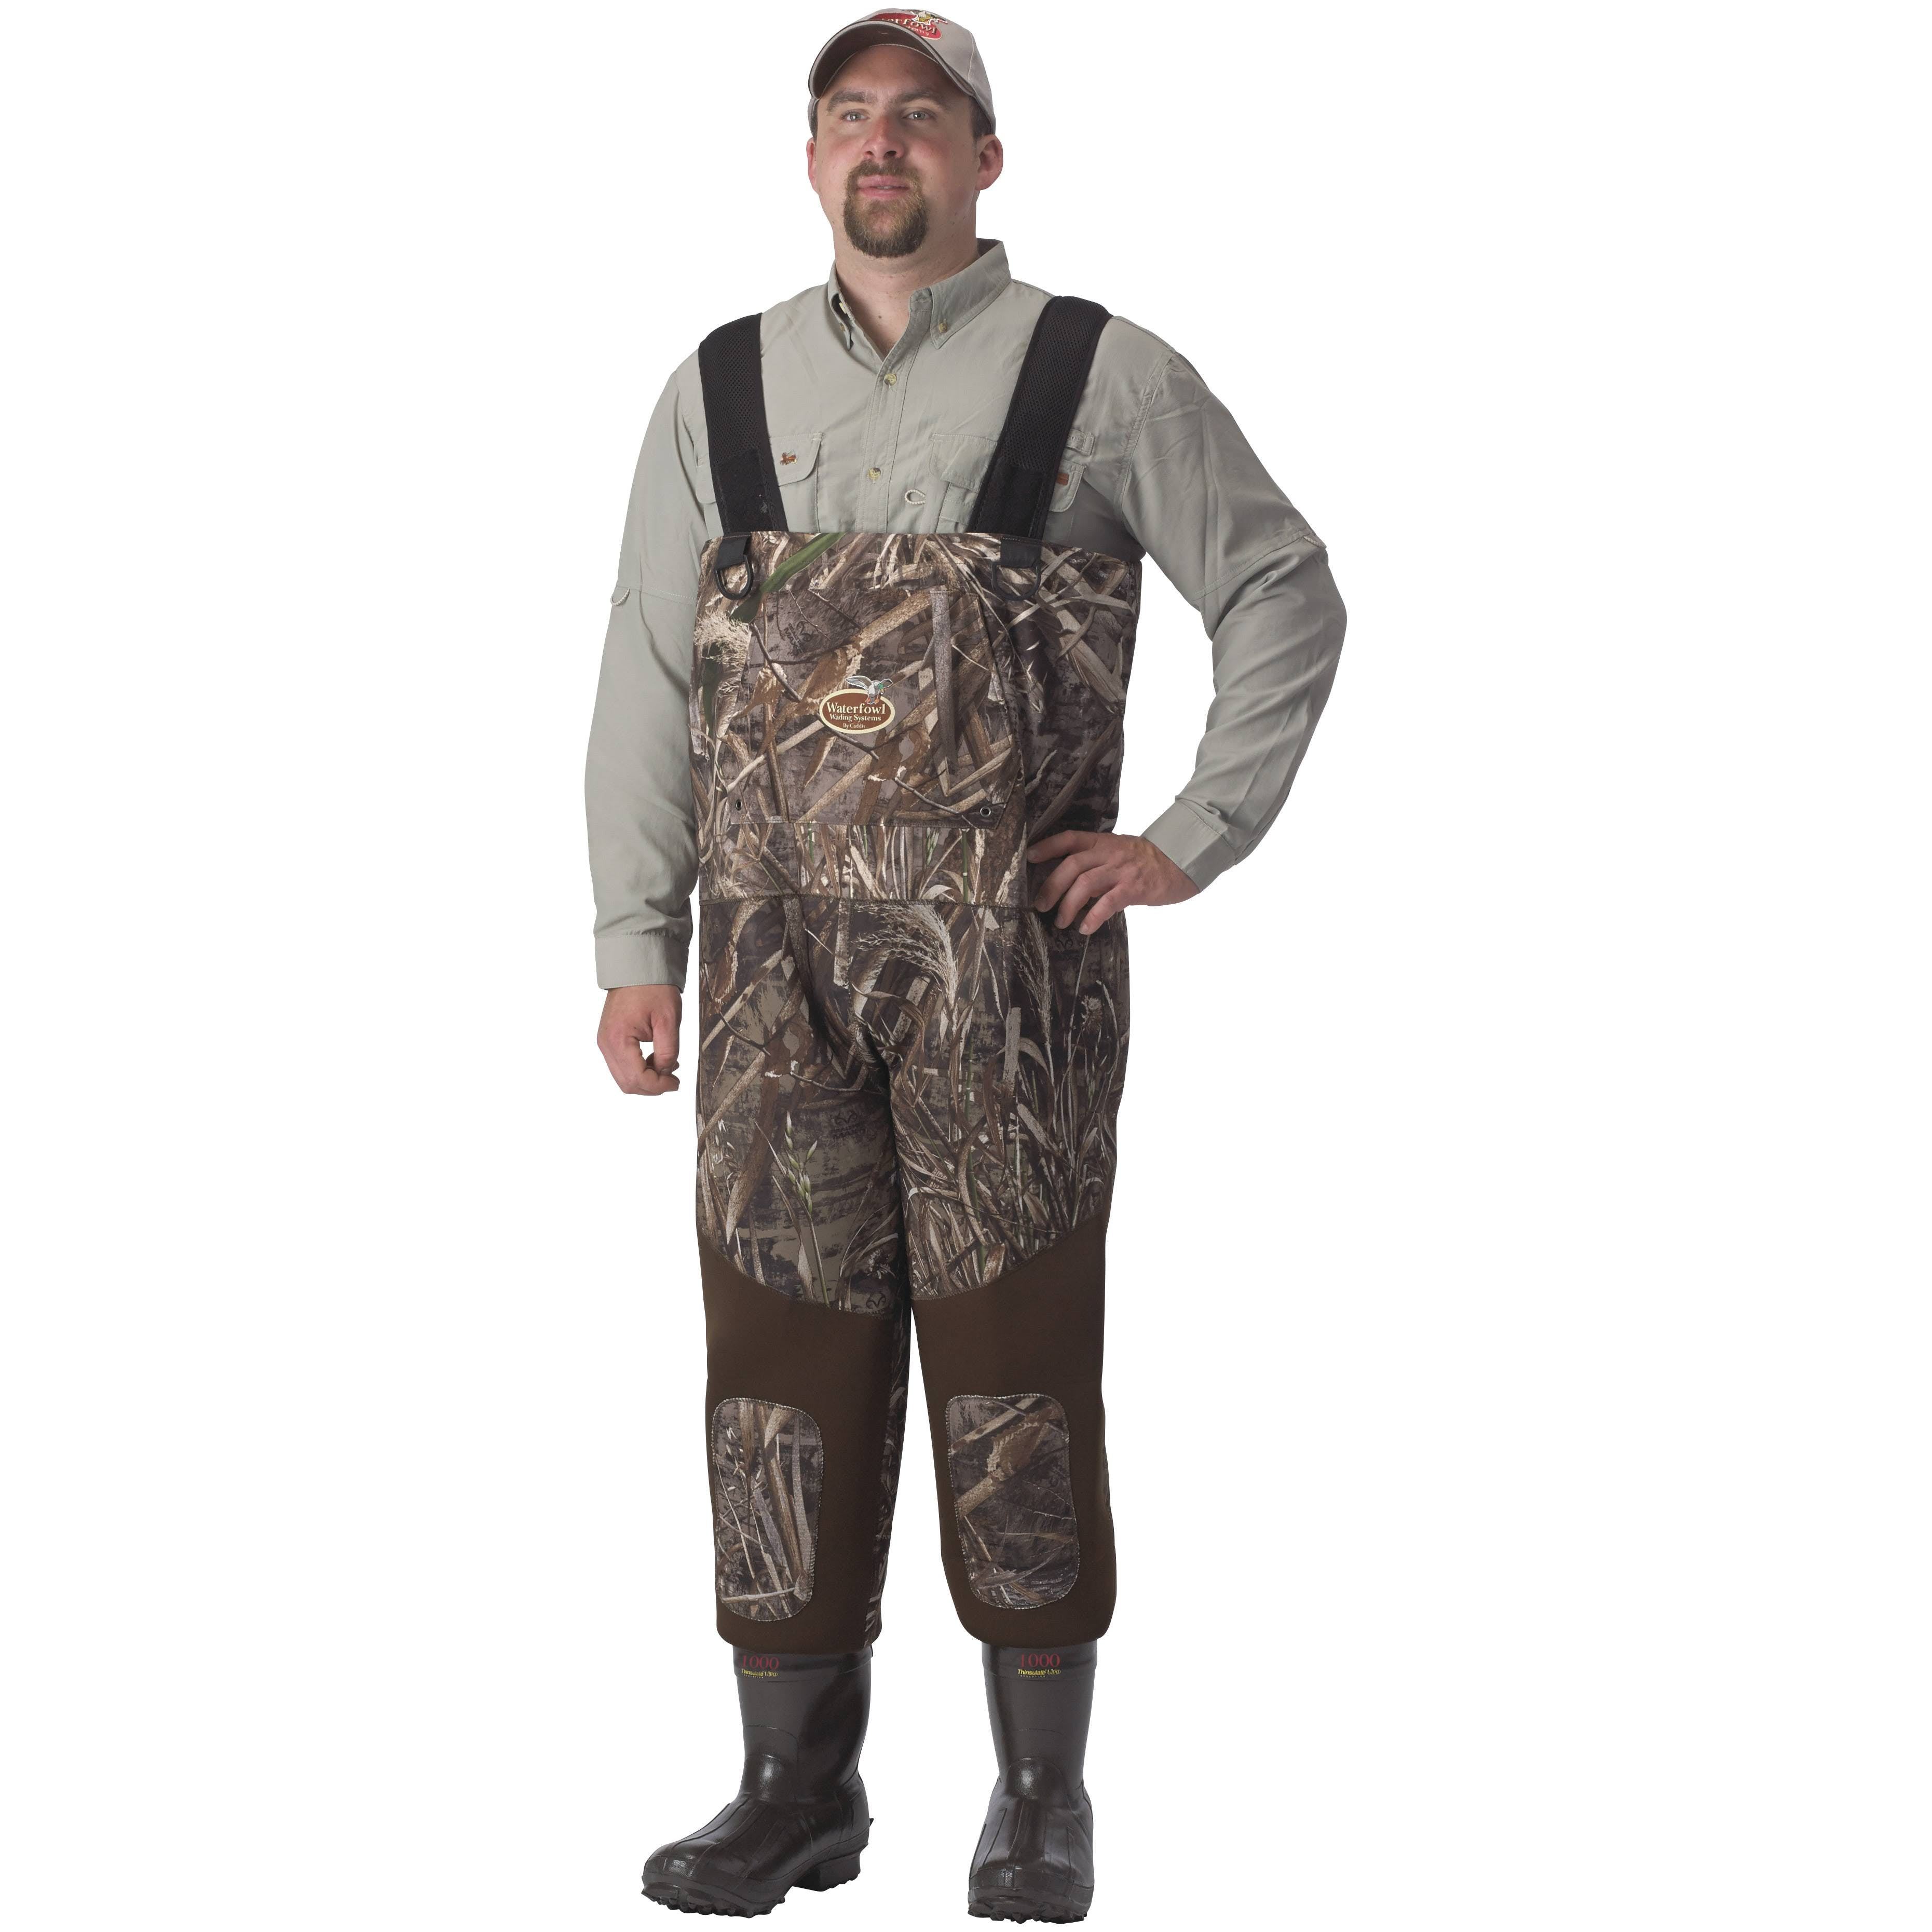 Caddis Men's NeoBreathable Hybrid Waders Stout - Realtree Max-5